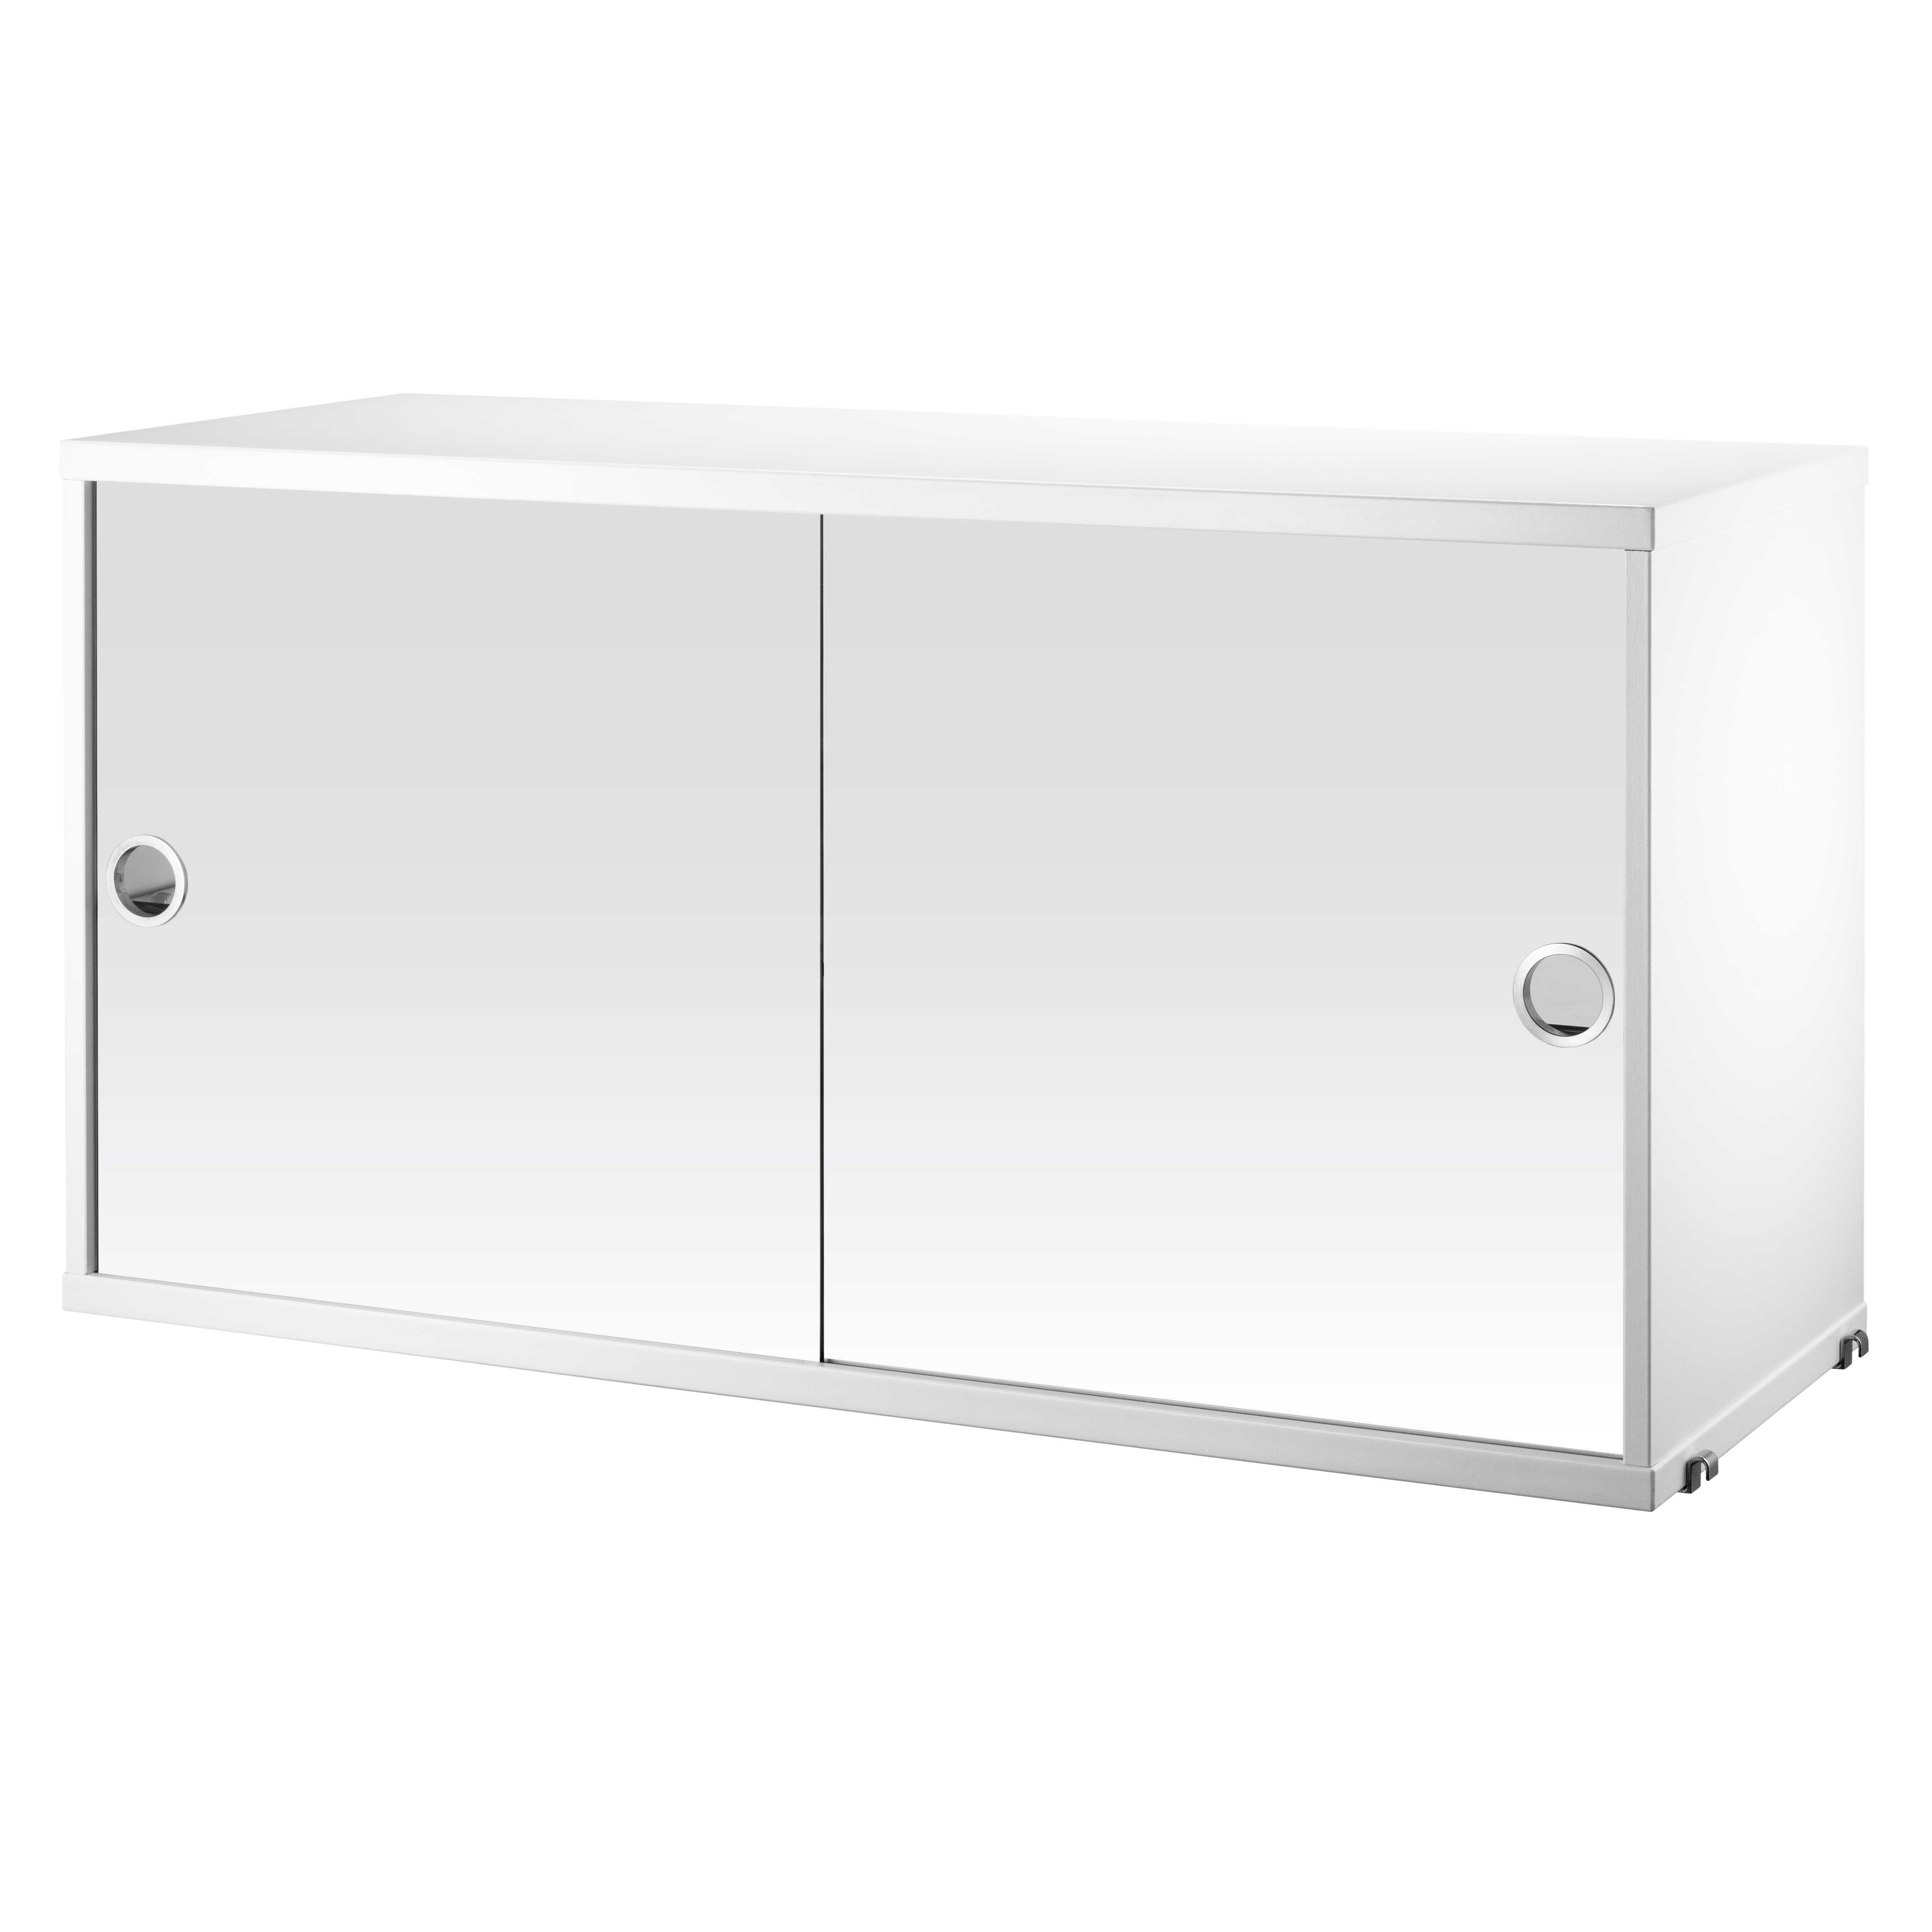 String Cabinet With Mirror Doors 78 X 20 37 Cm